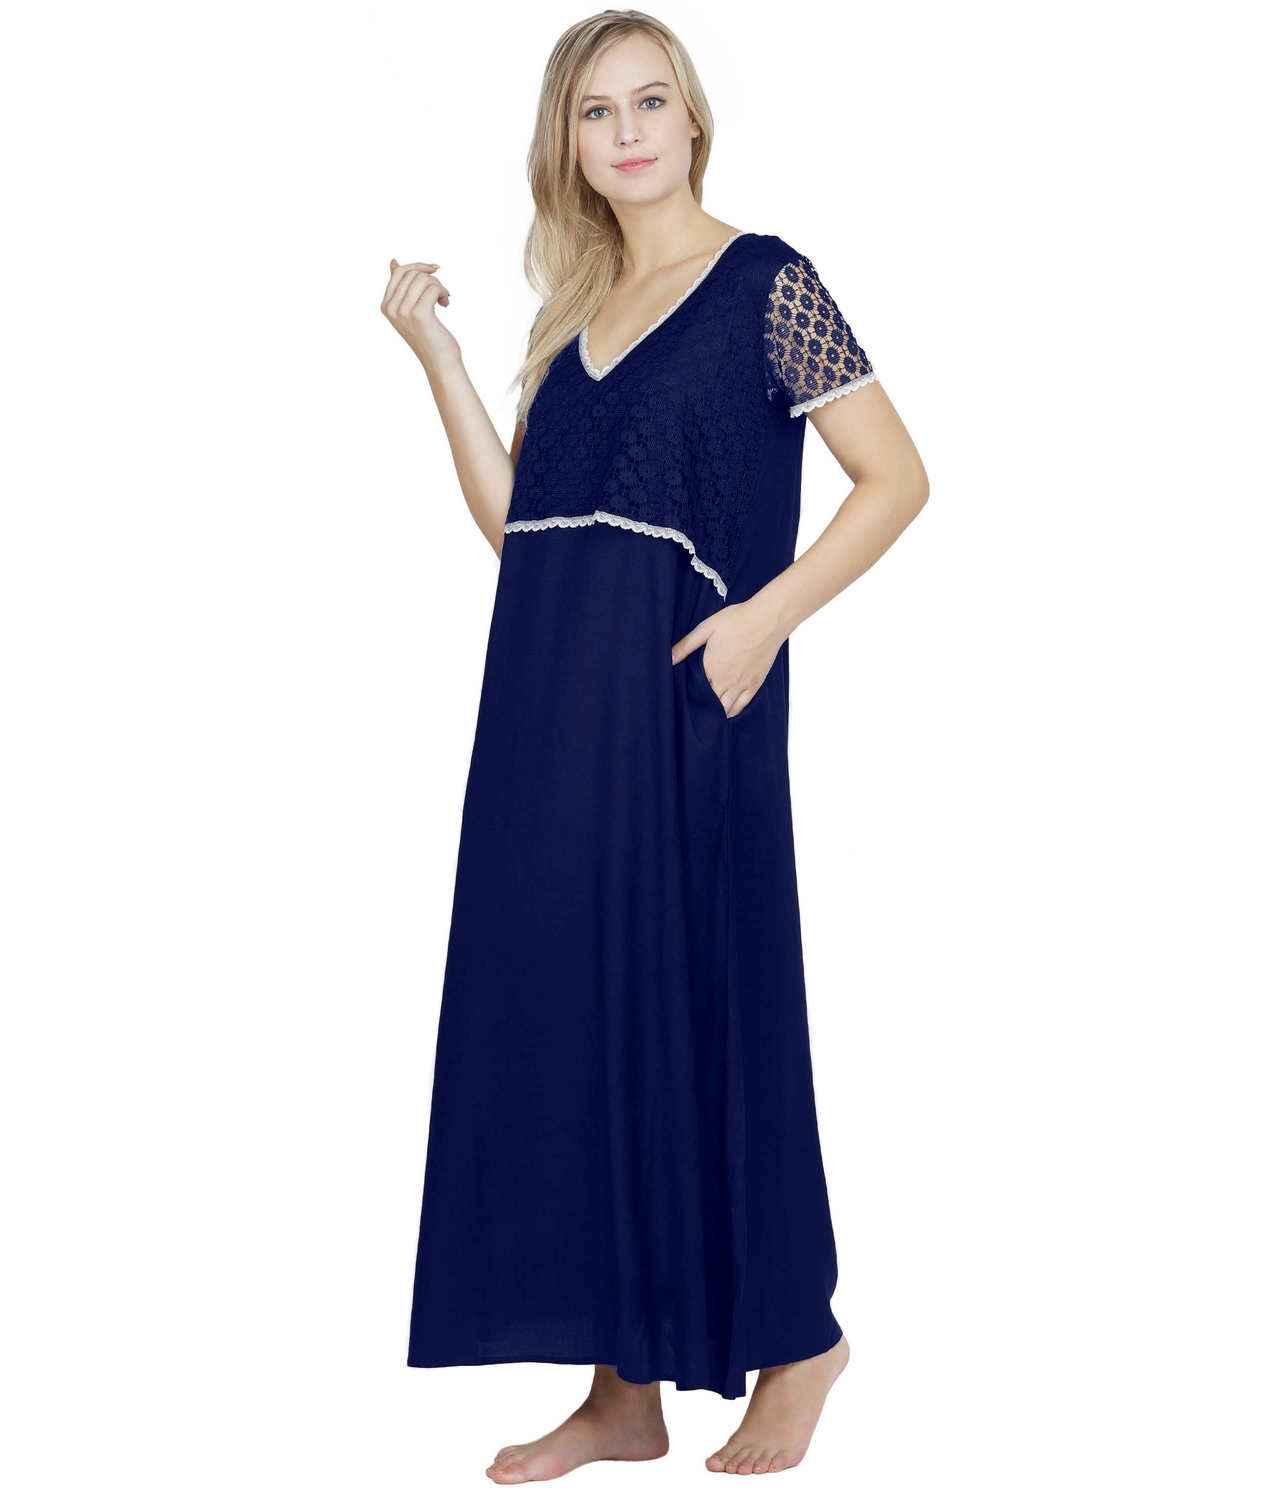 Lace Embellished Blouson Maxi Night-Gown Nighty in Royal Blue